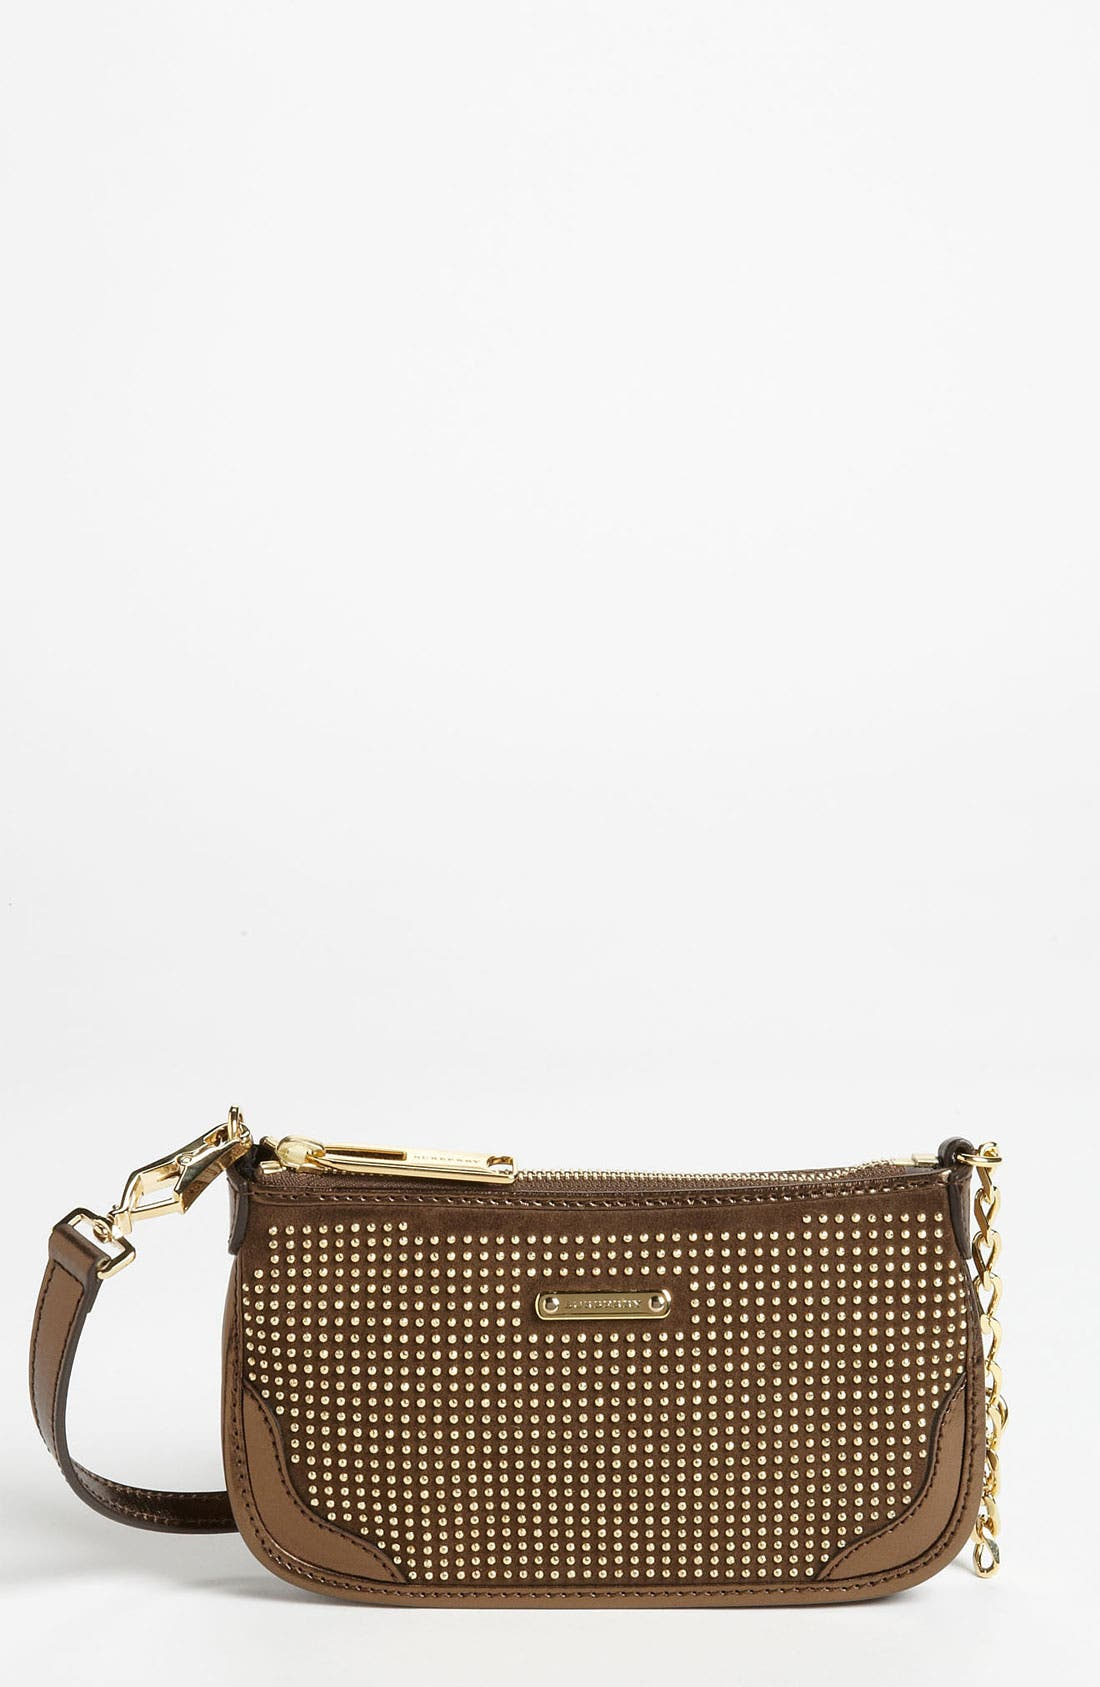 Alternate Image 1 Selected - Burberry 'Metallic Studs' Suede & Leather Pouch